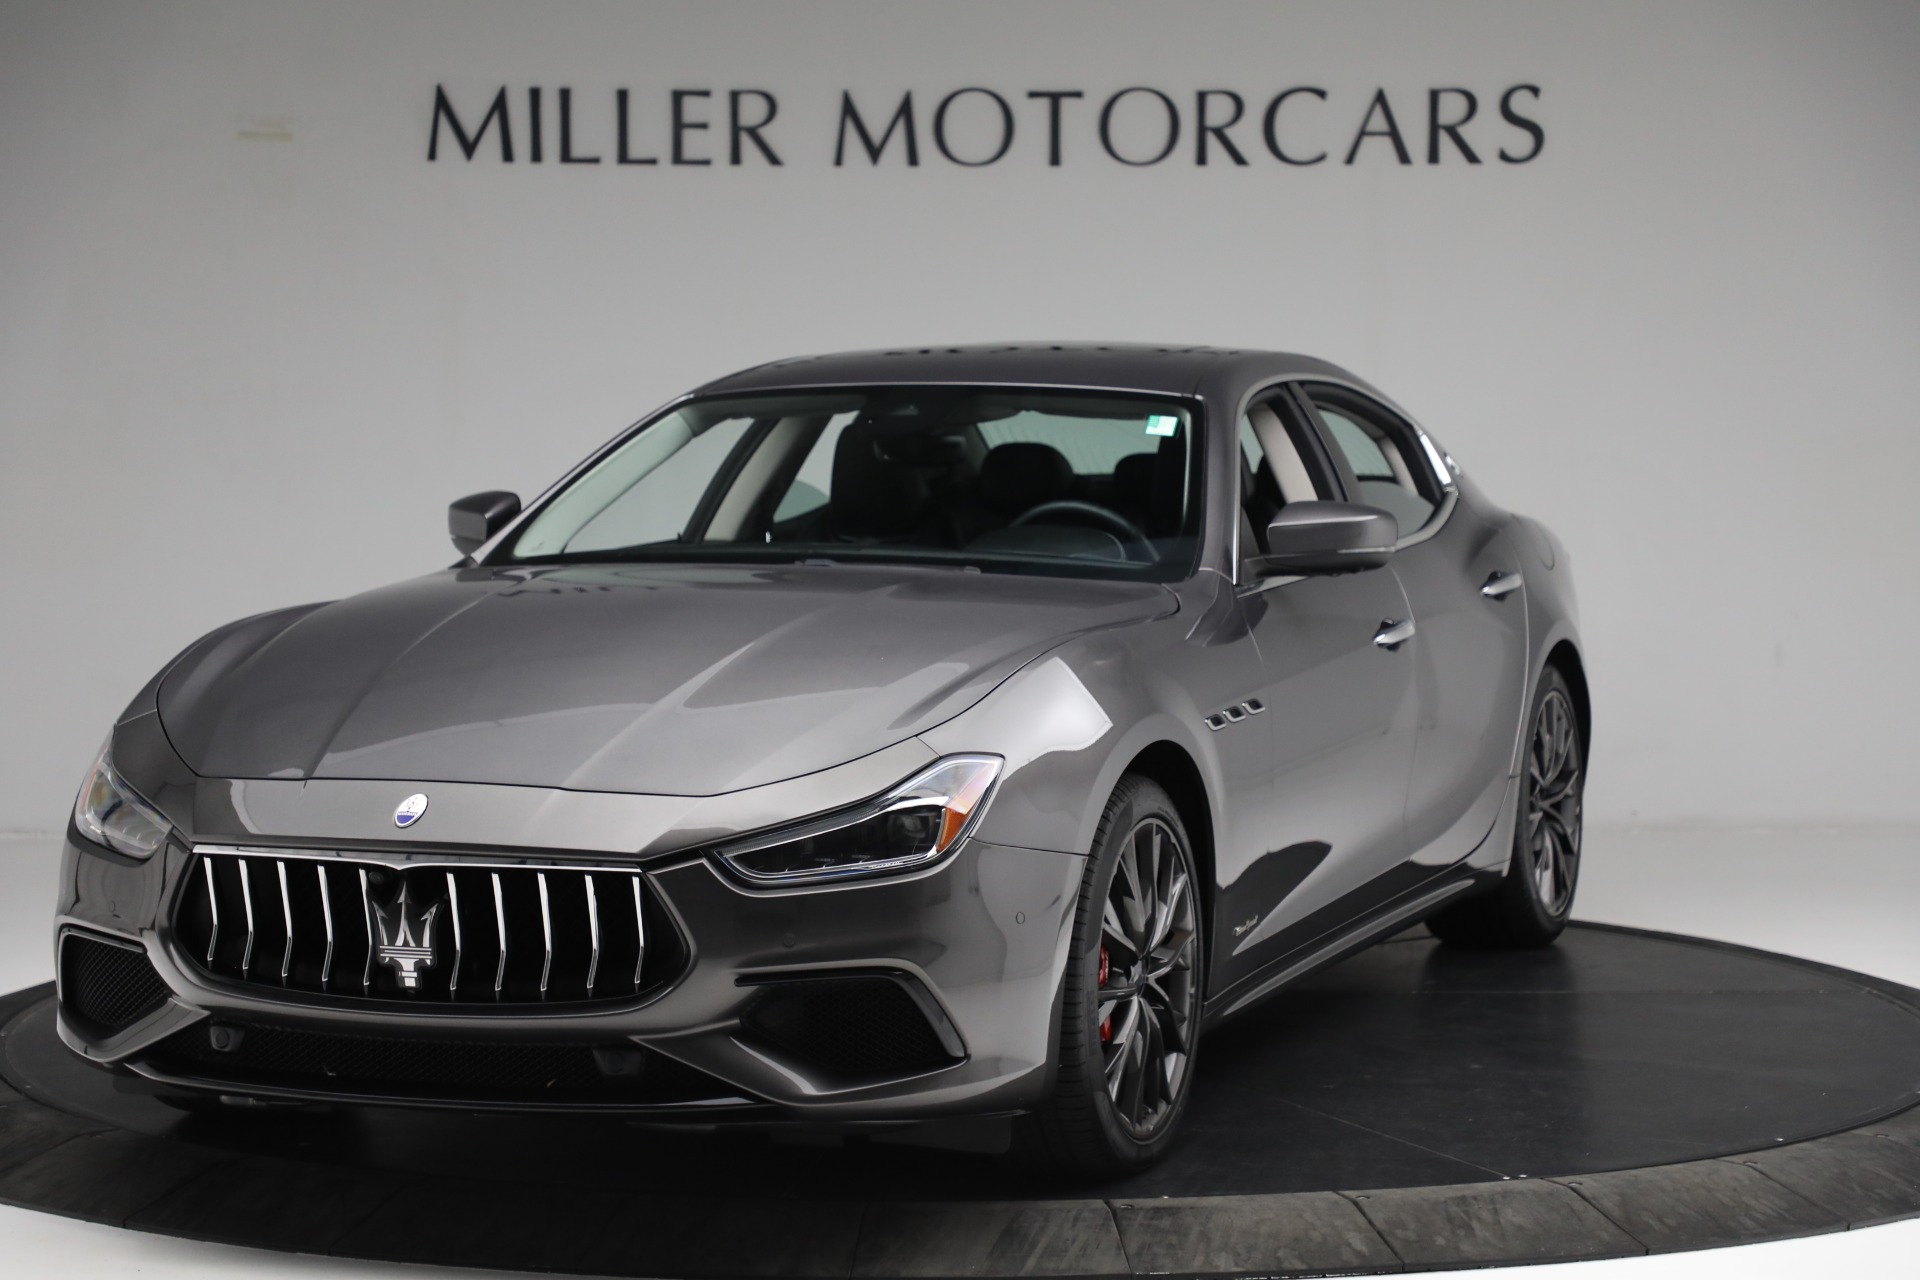 New 2019 Maserati Ghibli S Q4 GranSport for sale Sold at McLaren Greenwich in Greenwich CT 06830 1